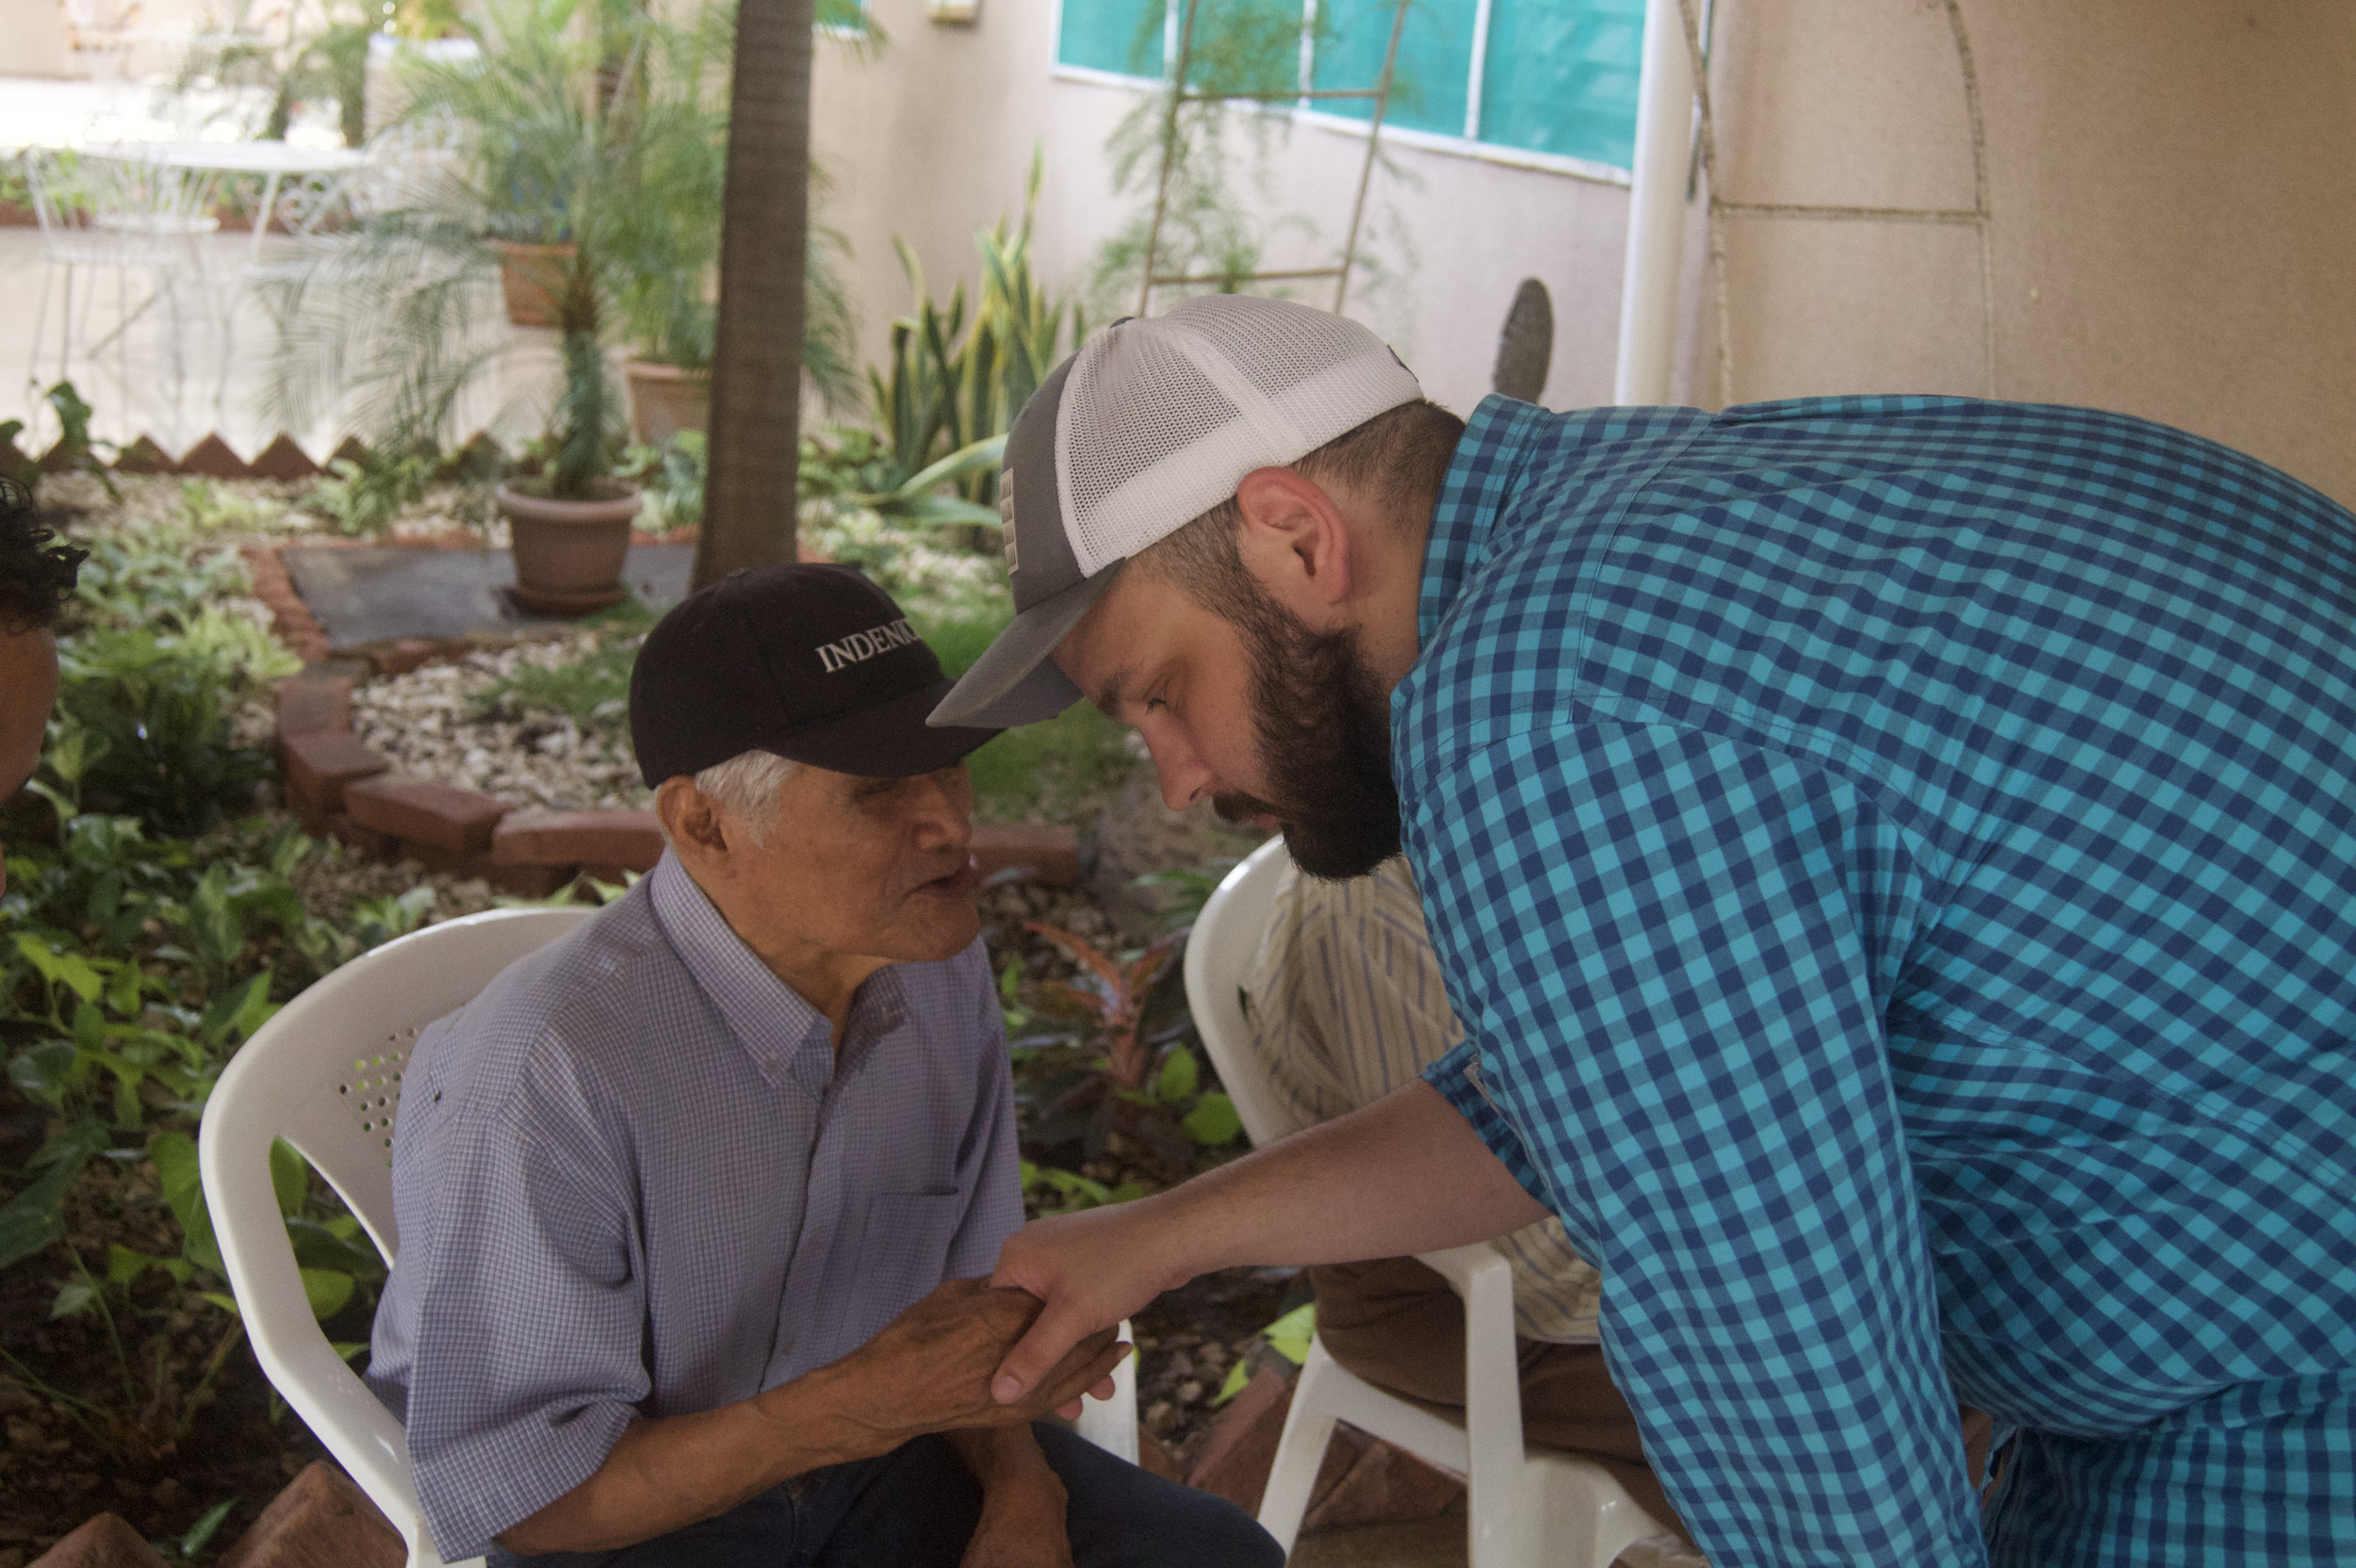 Pastor Rieger talks with a resident